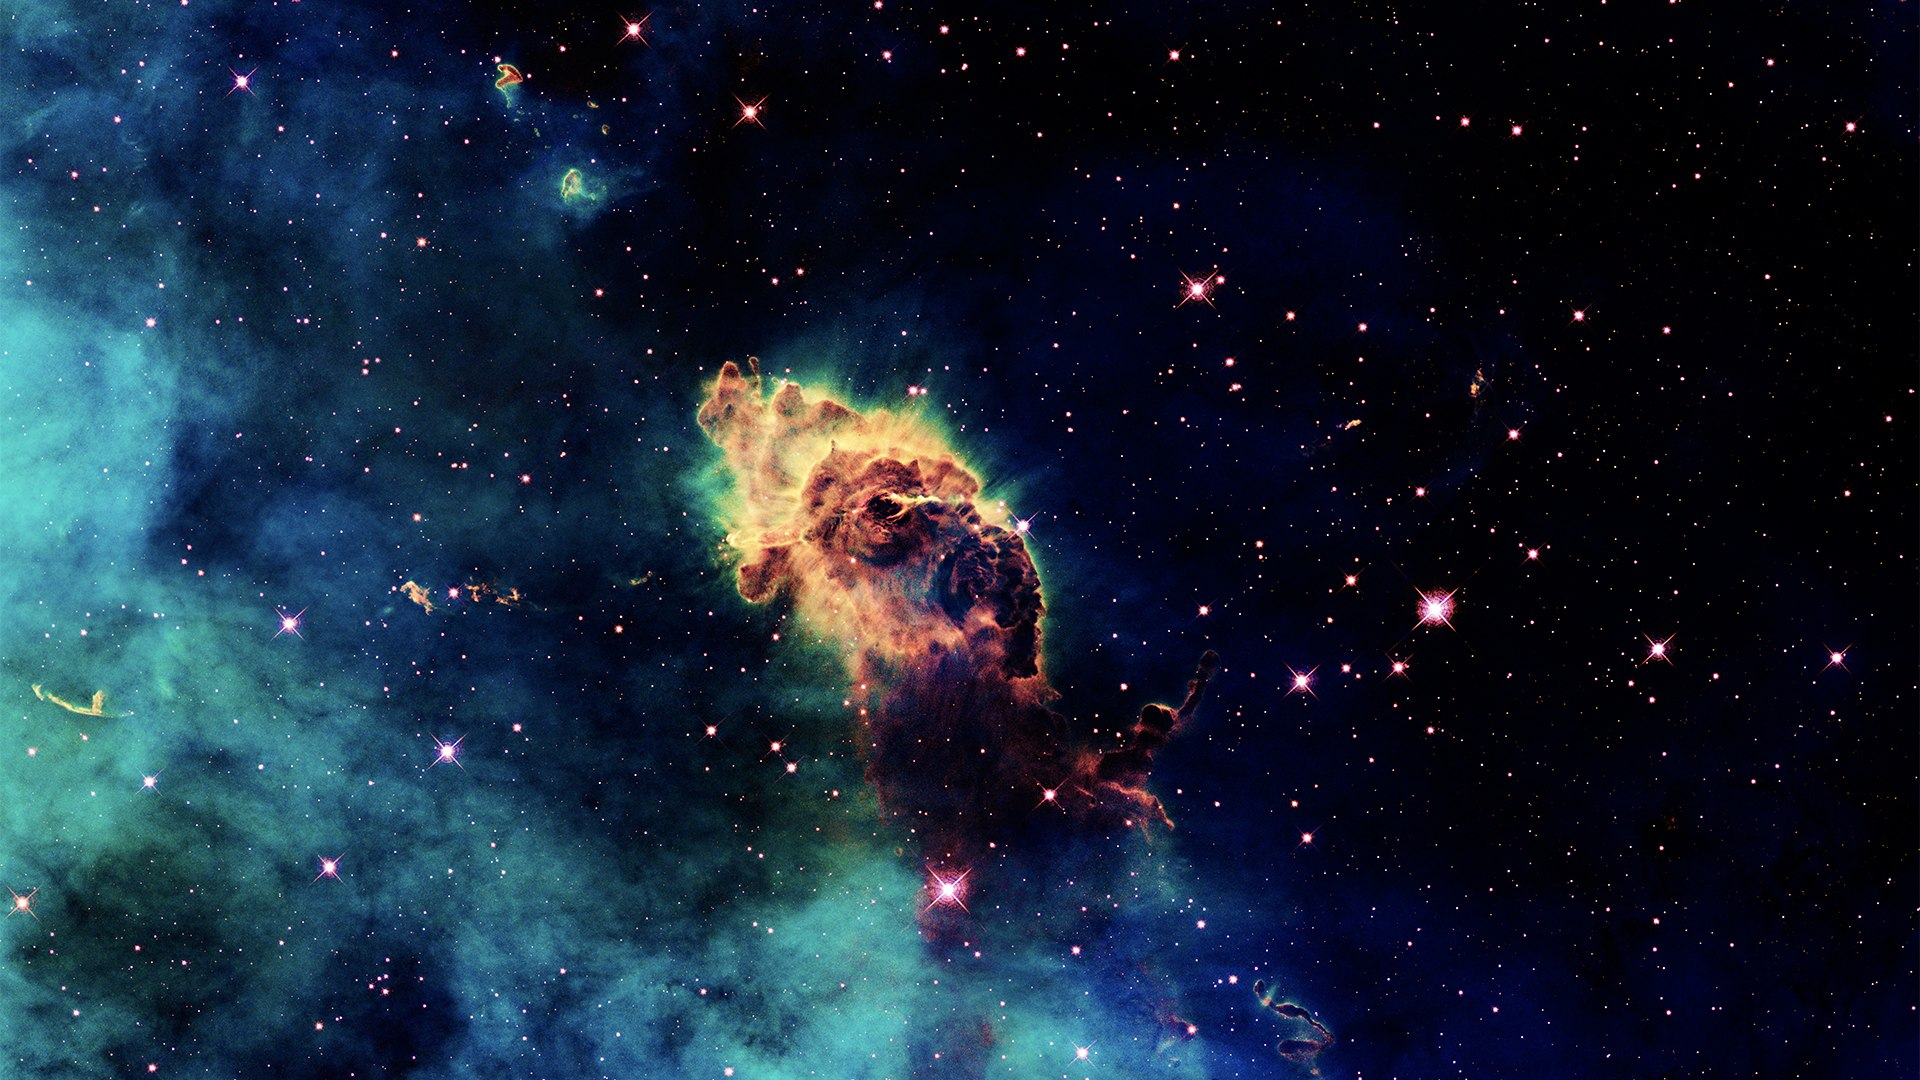 deep space hd wallpaper 1366x768 - photo #35